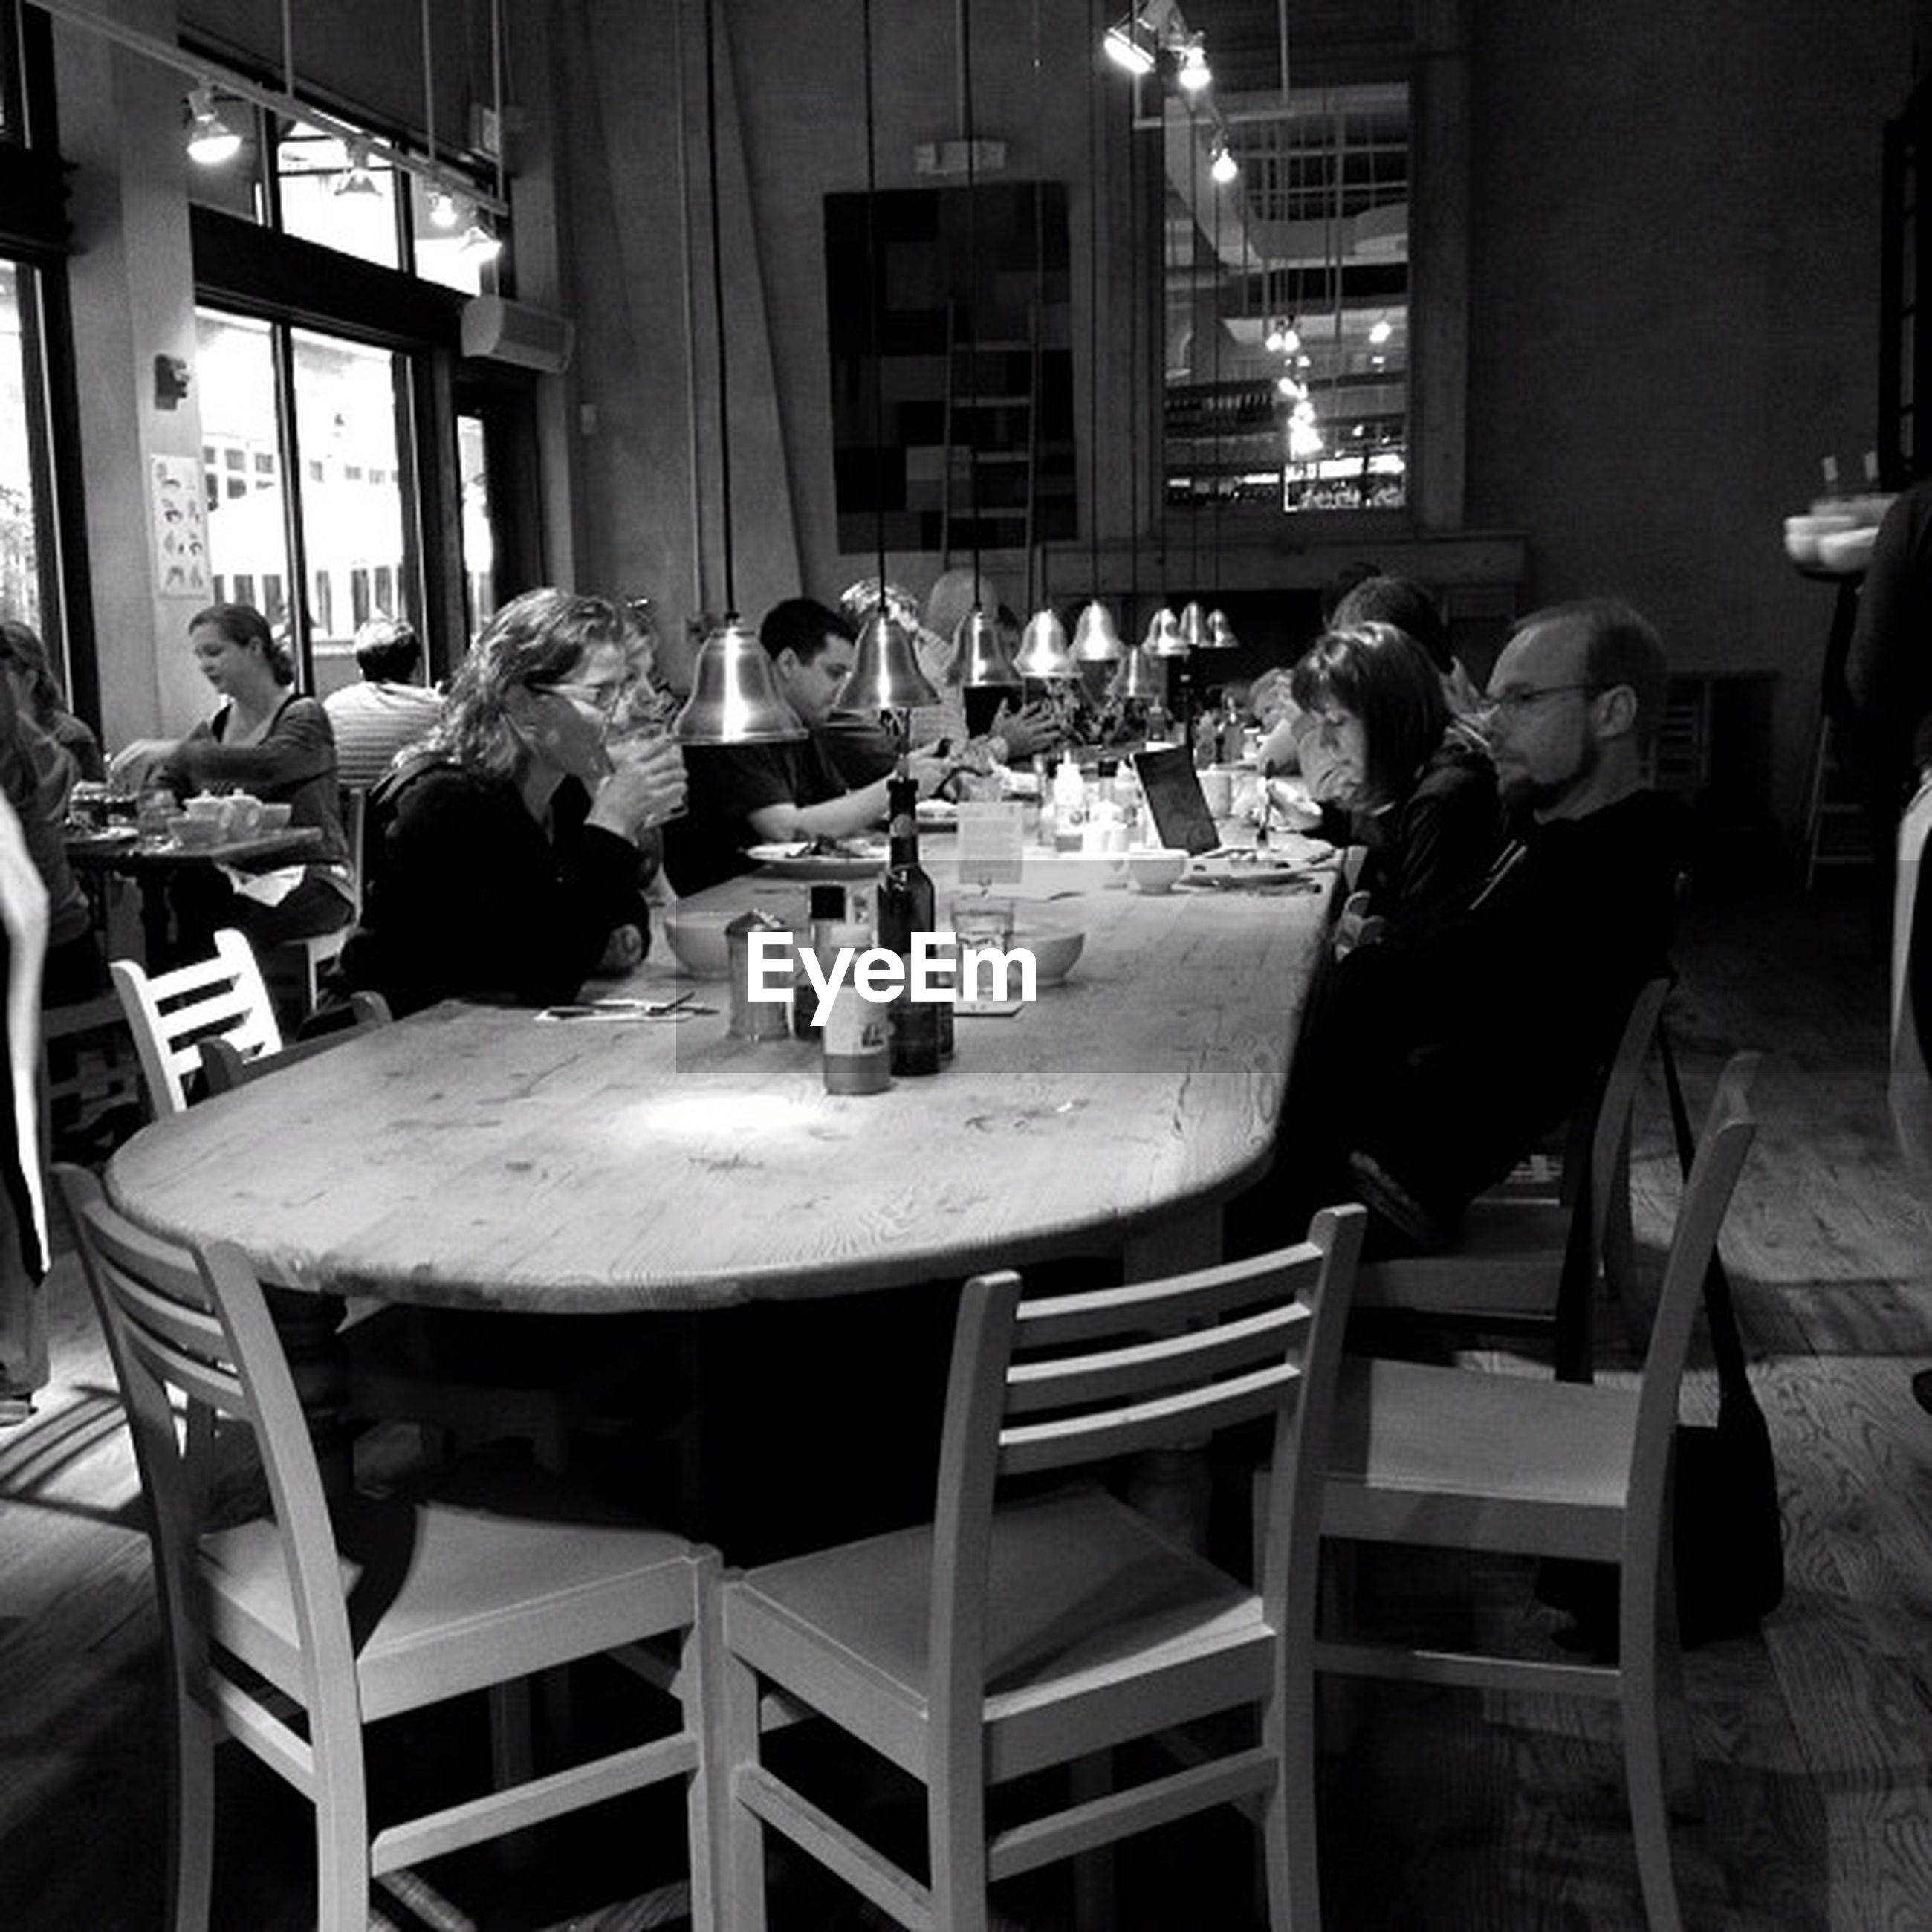 table, indoors, sitting, men, restaurant, chair, food and drink, lifestyles, food, leisure activity, person, night, built structure, occupation, architecture, sidewalk cafe, casual clothing, working